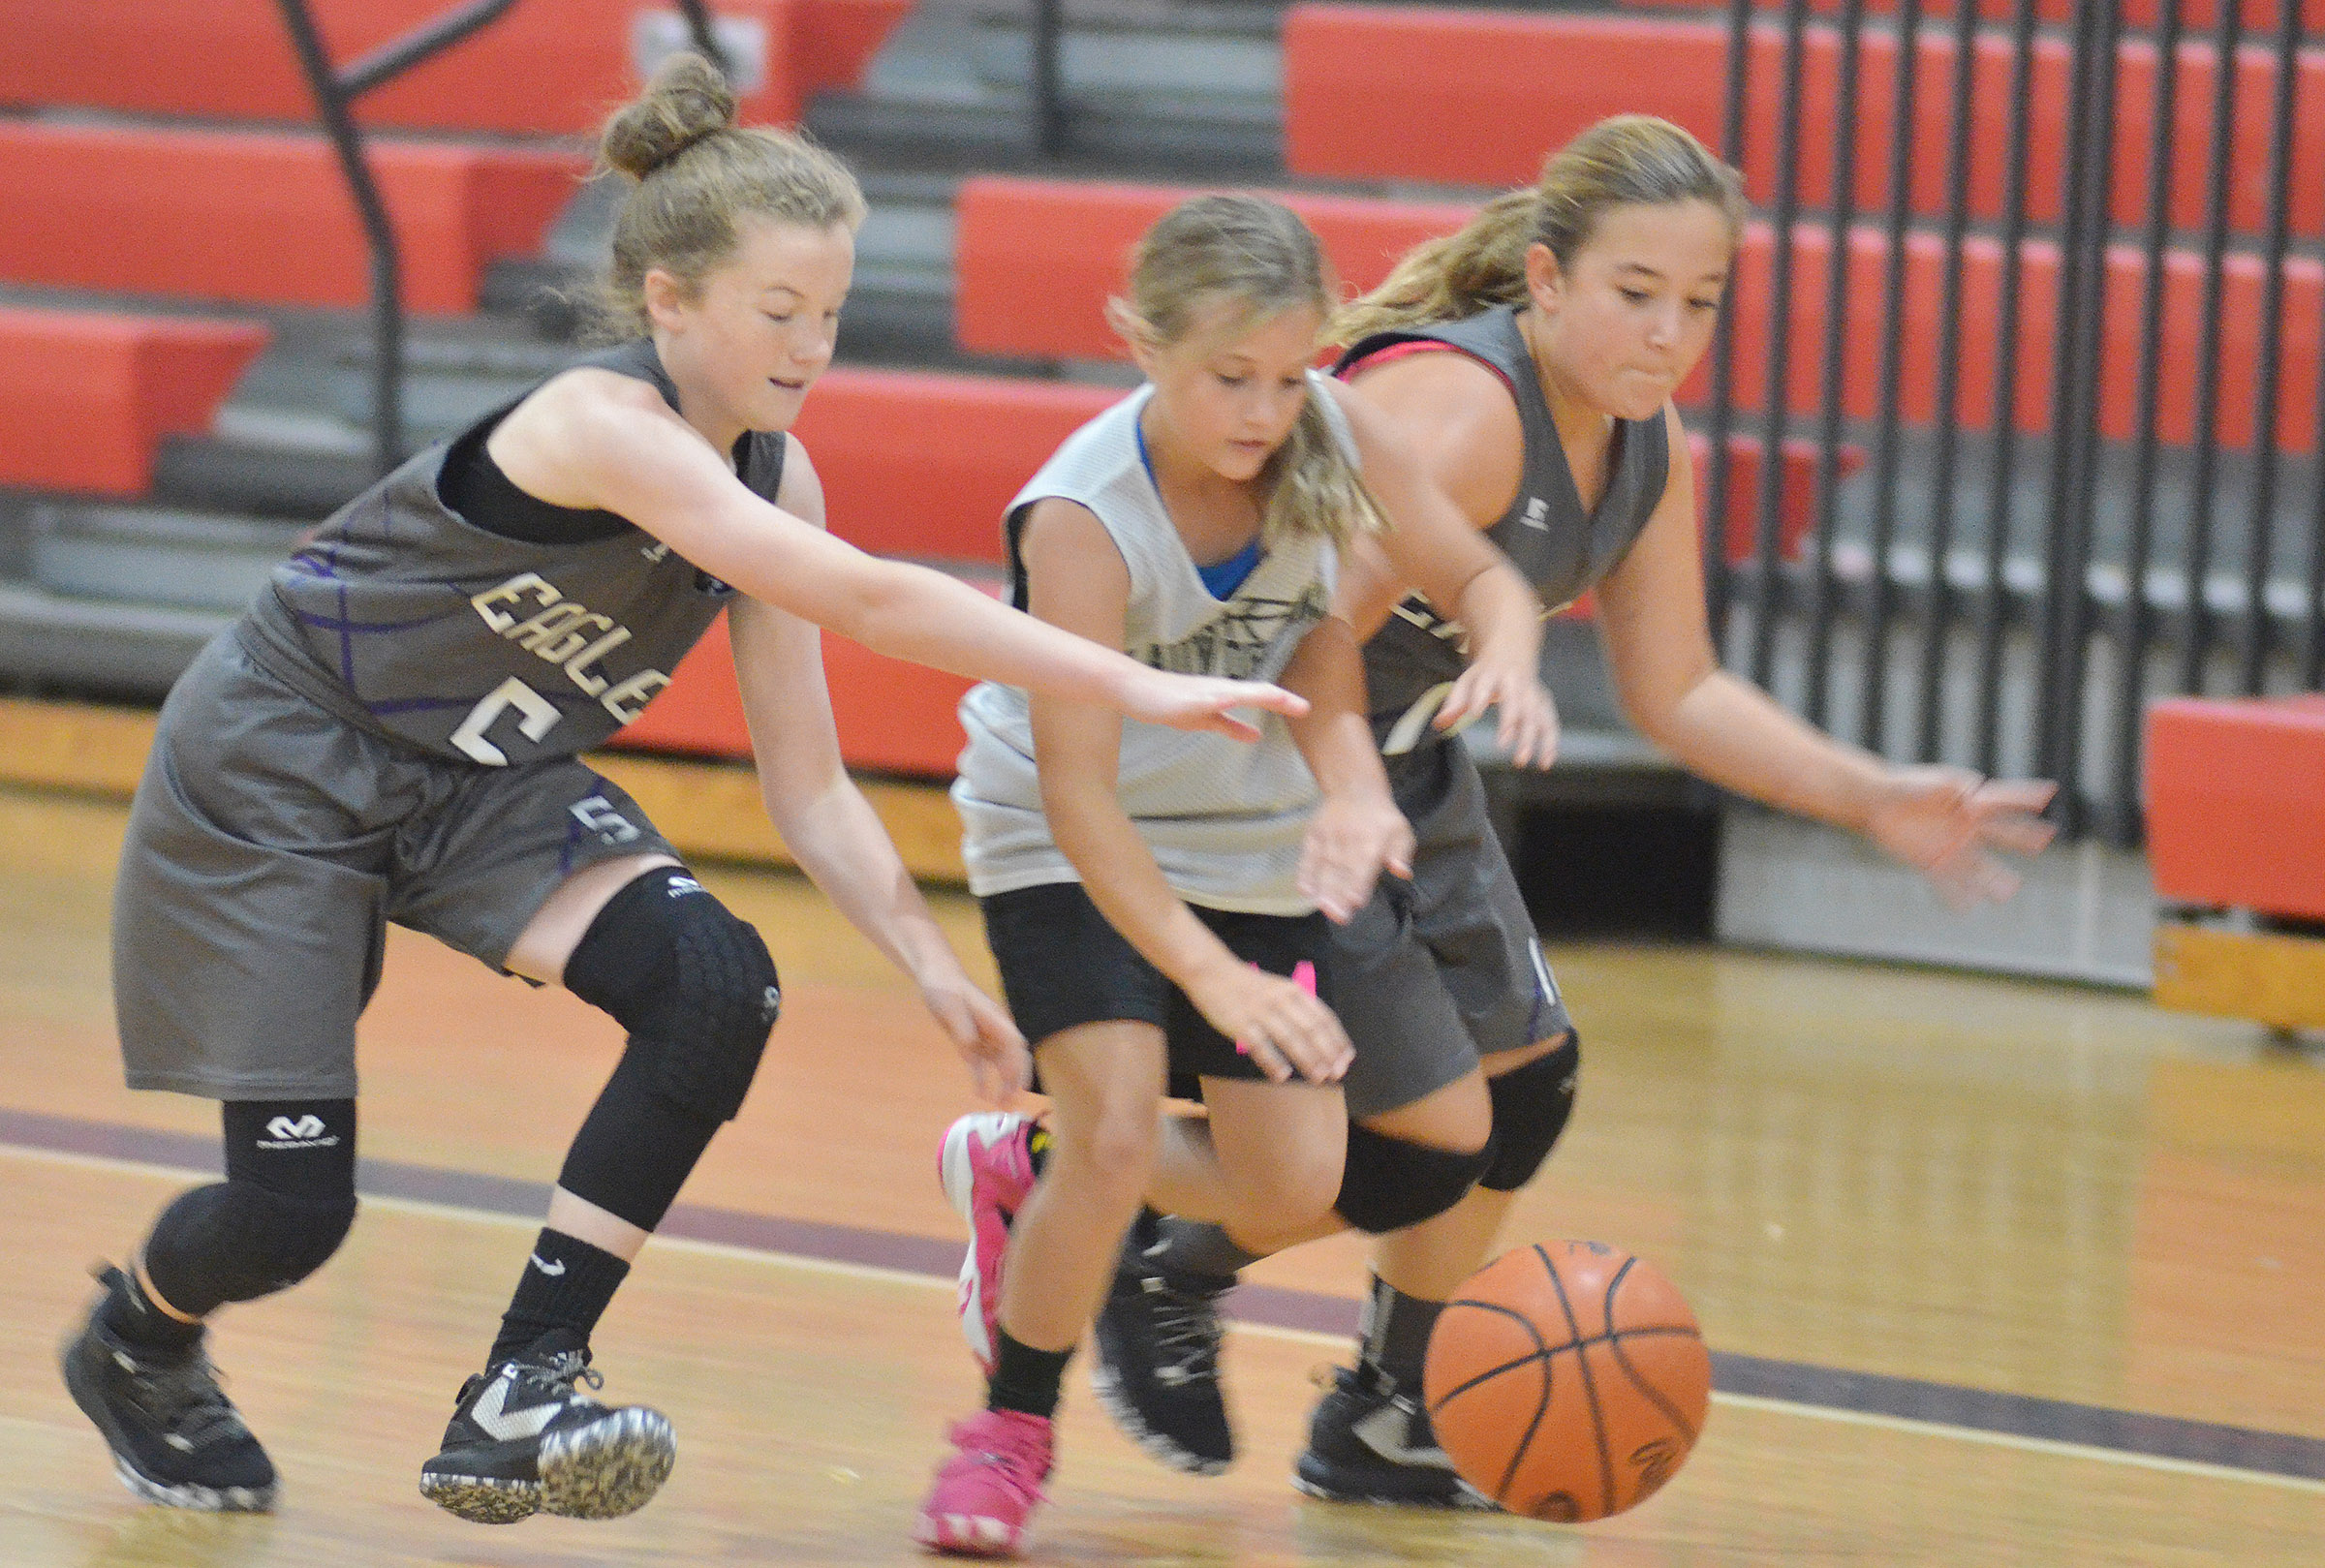 CMS seventh-graders Dakota Slone, at left, and Briana Davis try to steal the ball.